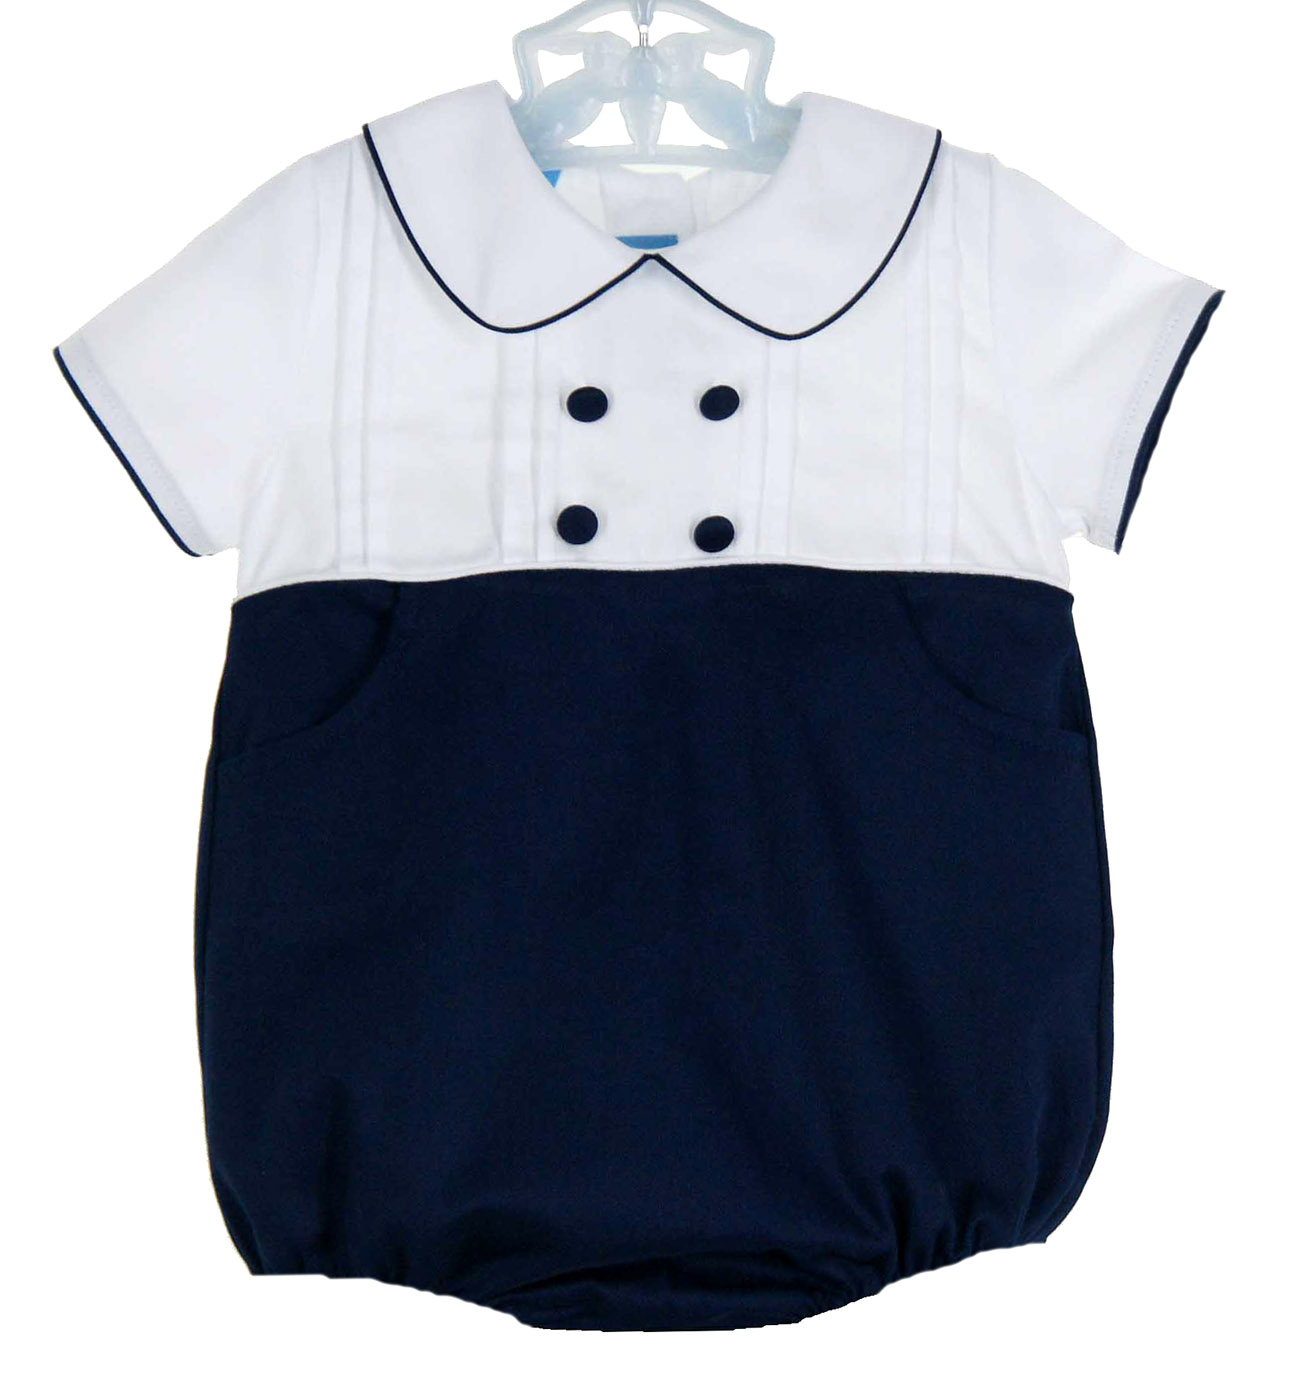 b655ef838 NEW Anavini Navy and White Cotton Pique Romper